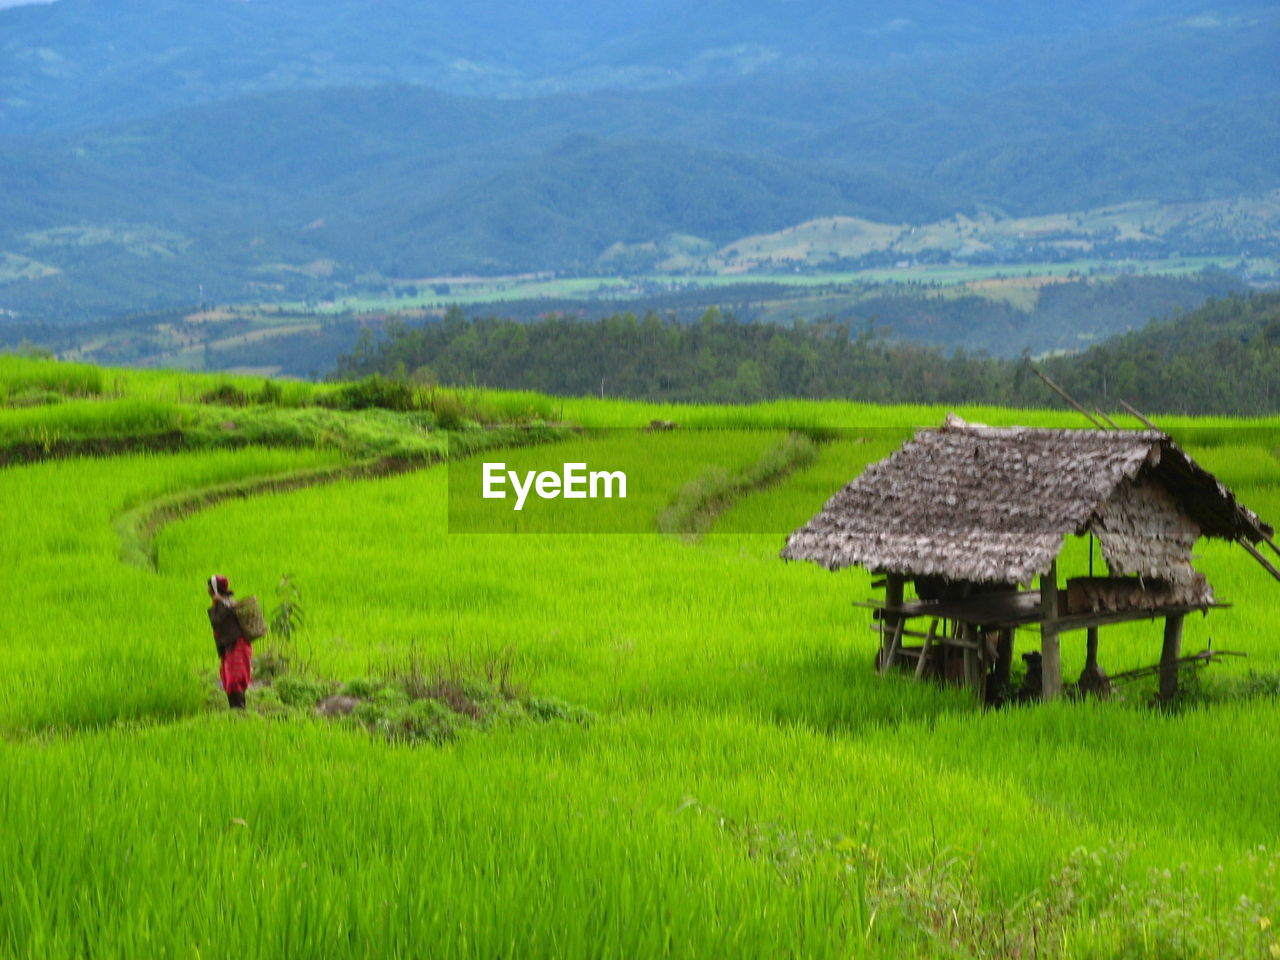 field, plant, green color, landscape, scenics - nature, land, environment, beauty in nature, farm, nature, rural scene, agriculture, growth, grass, day, rice paddy, real people, rice - cereal plant, tranquility, adult, outdoors, farmer